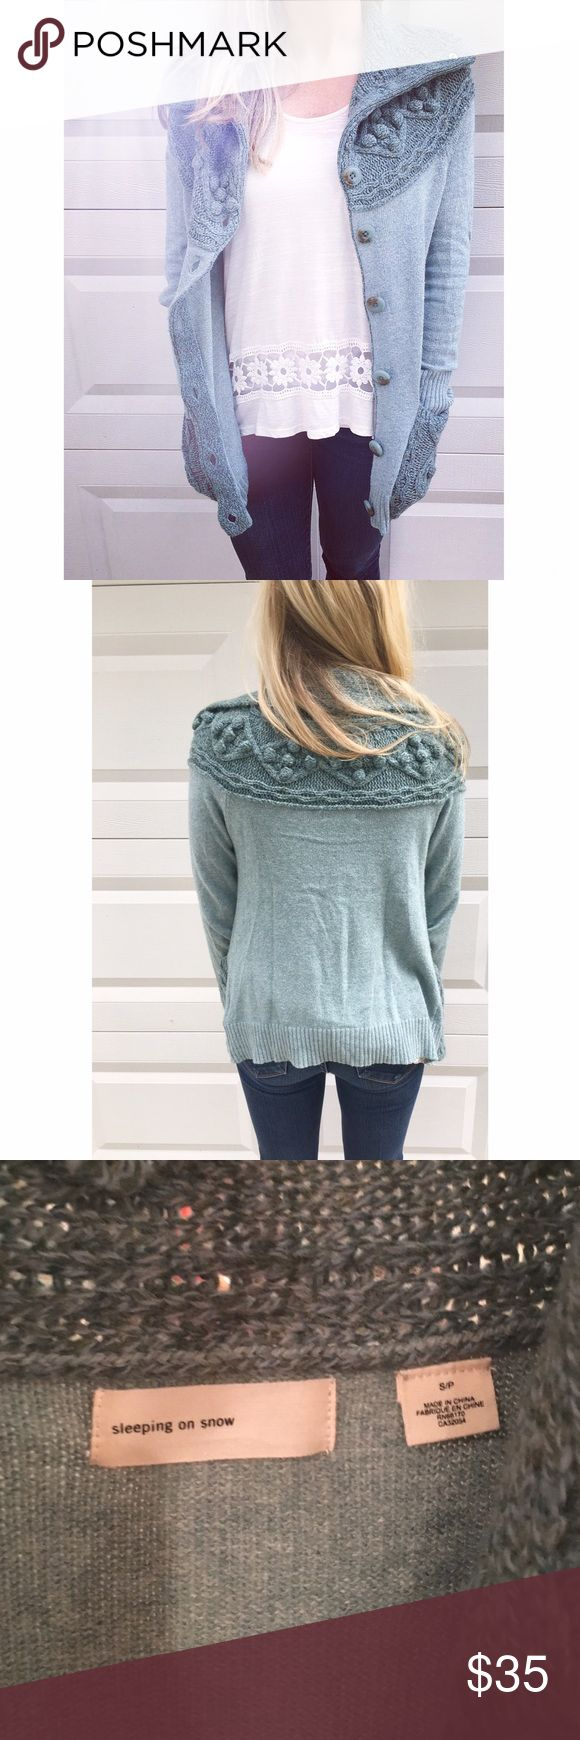 Anthropologie cardigan Anthropologie brand Sleeping on Snow. EUC. Warm, and soft. Anthropologie Sweaters Cardigans